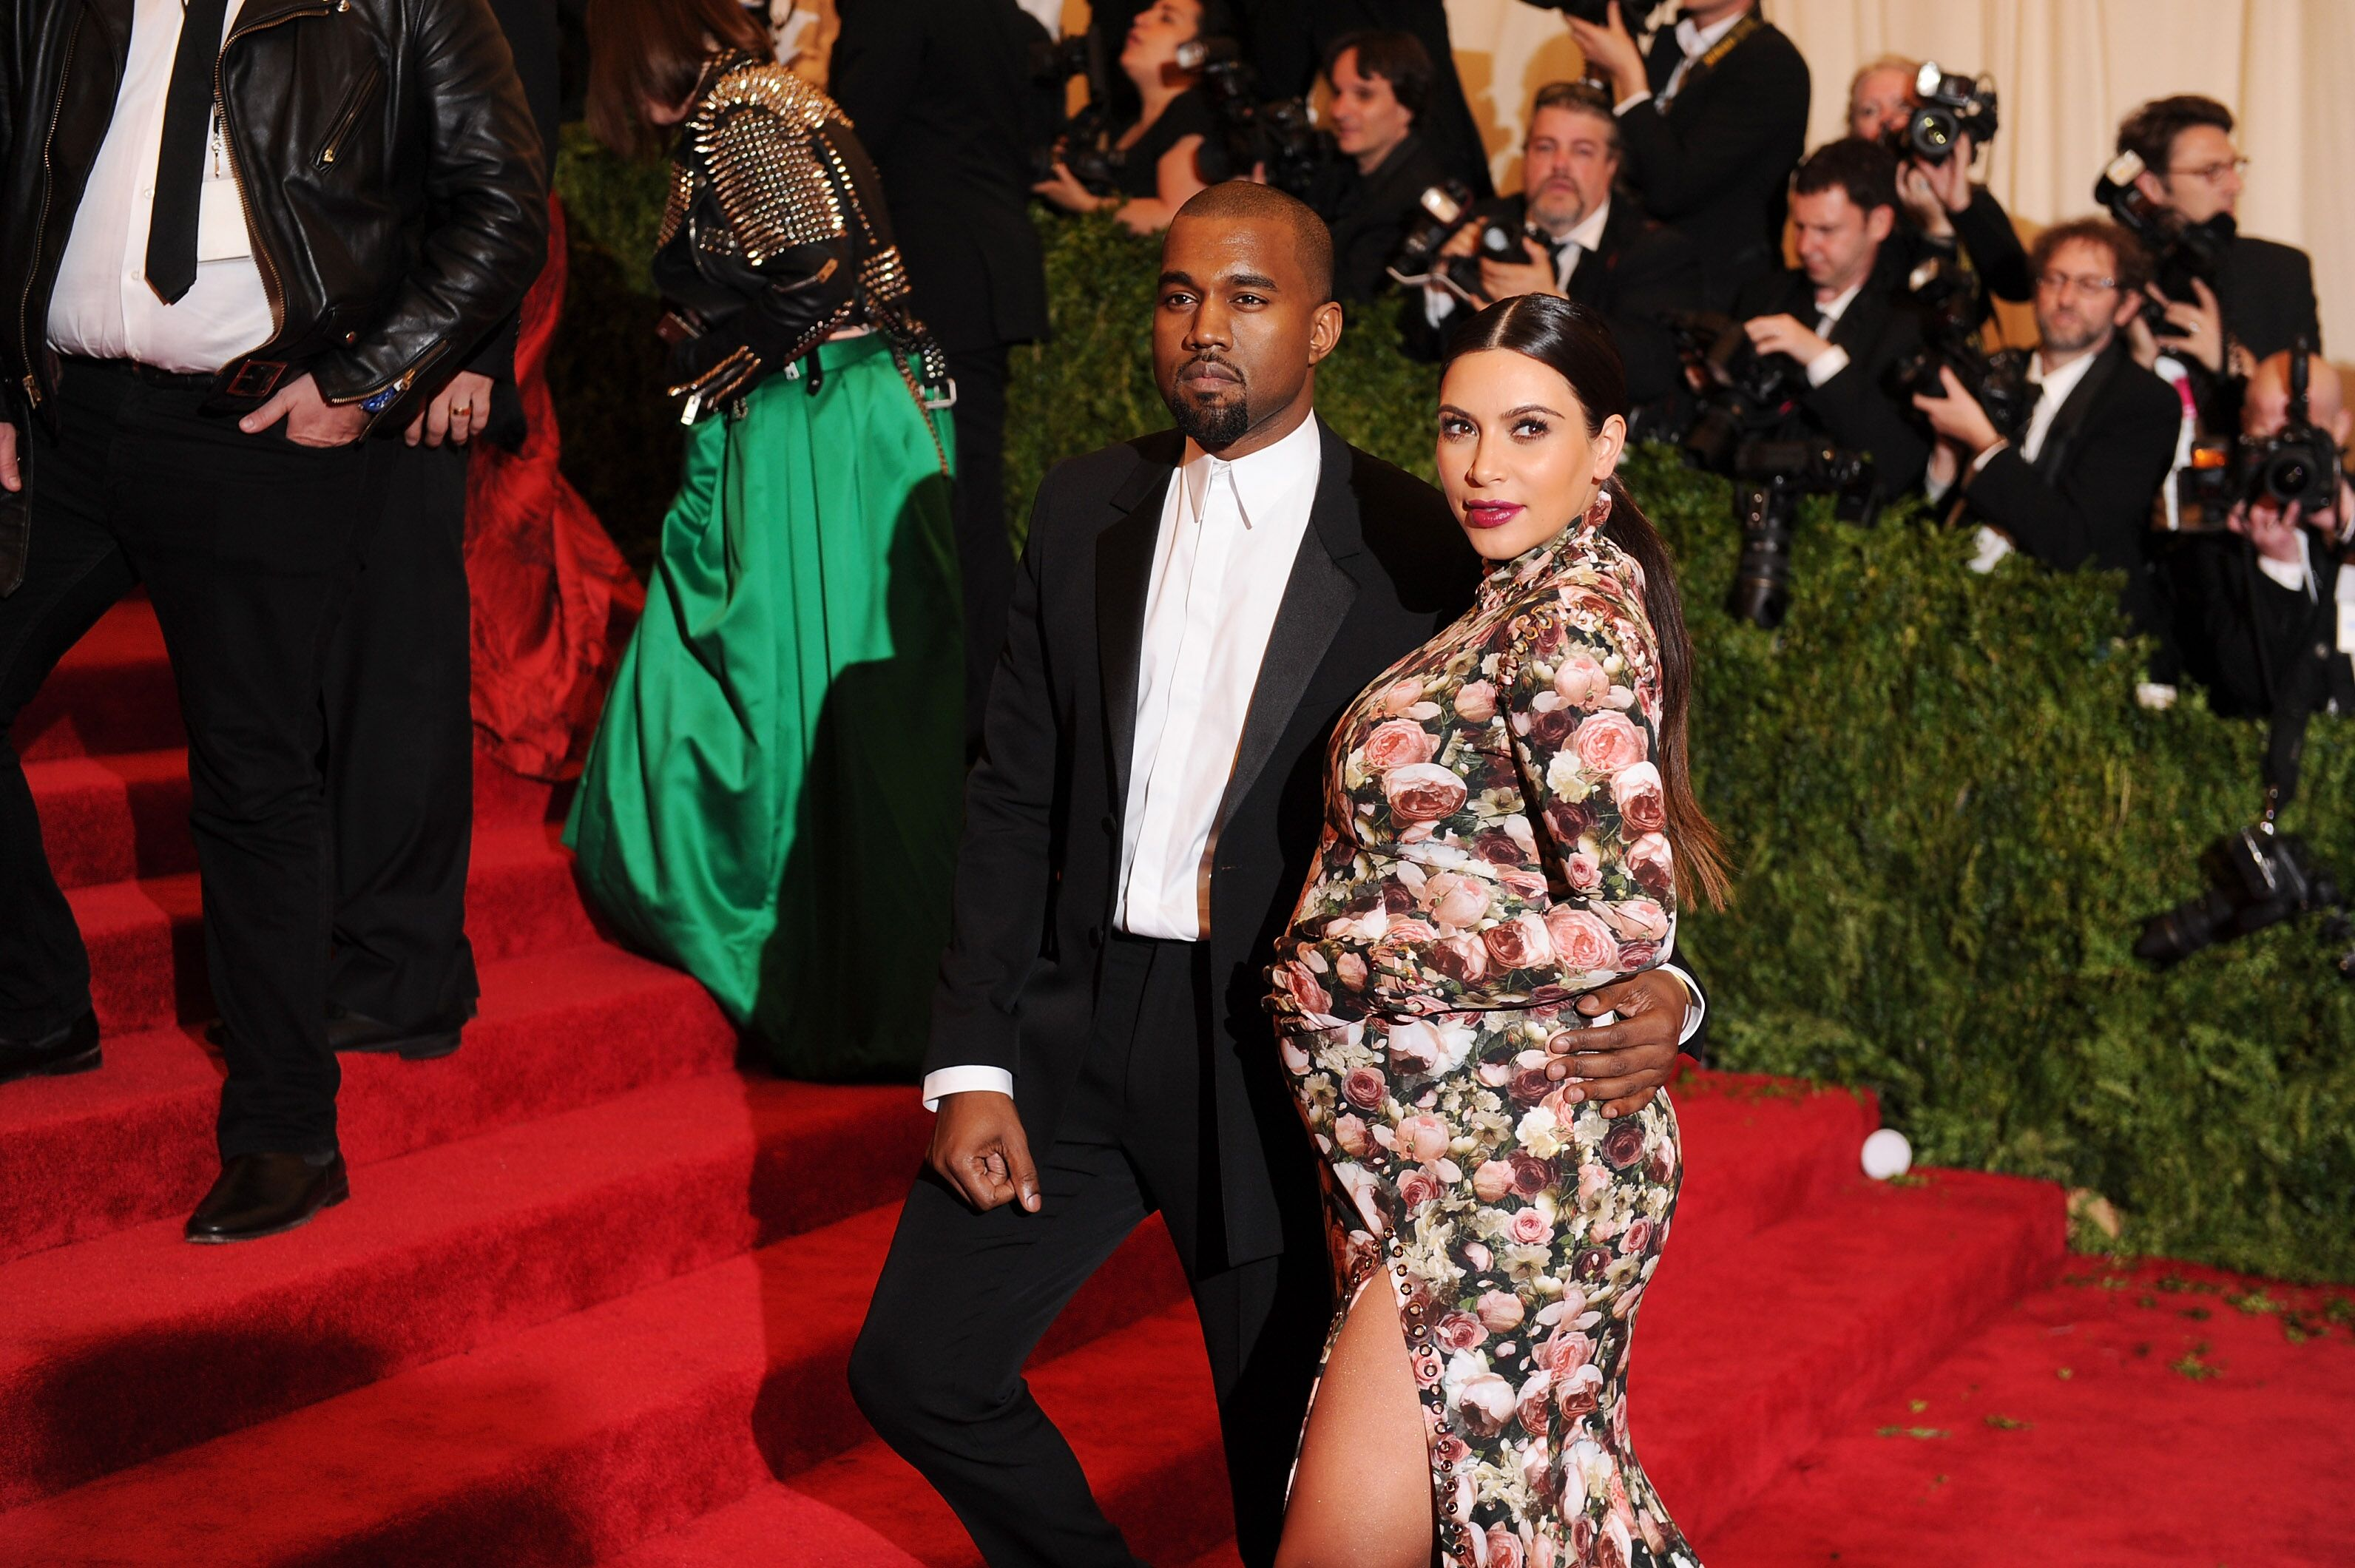 KAnye West and Kim Kardashian West at the 2013 MET Gala in New York | Source: Getty Images